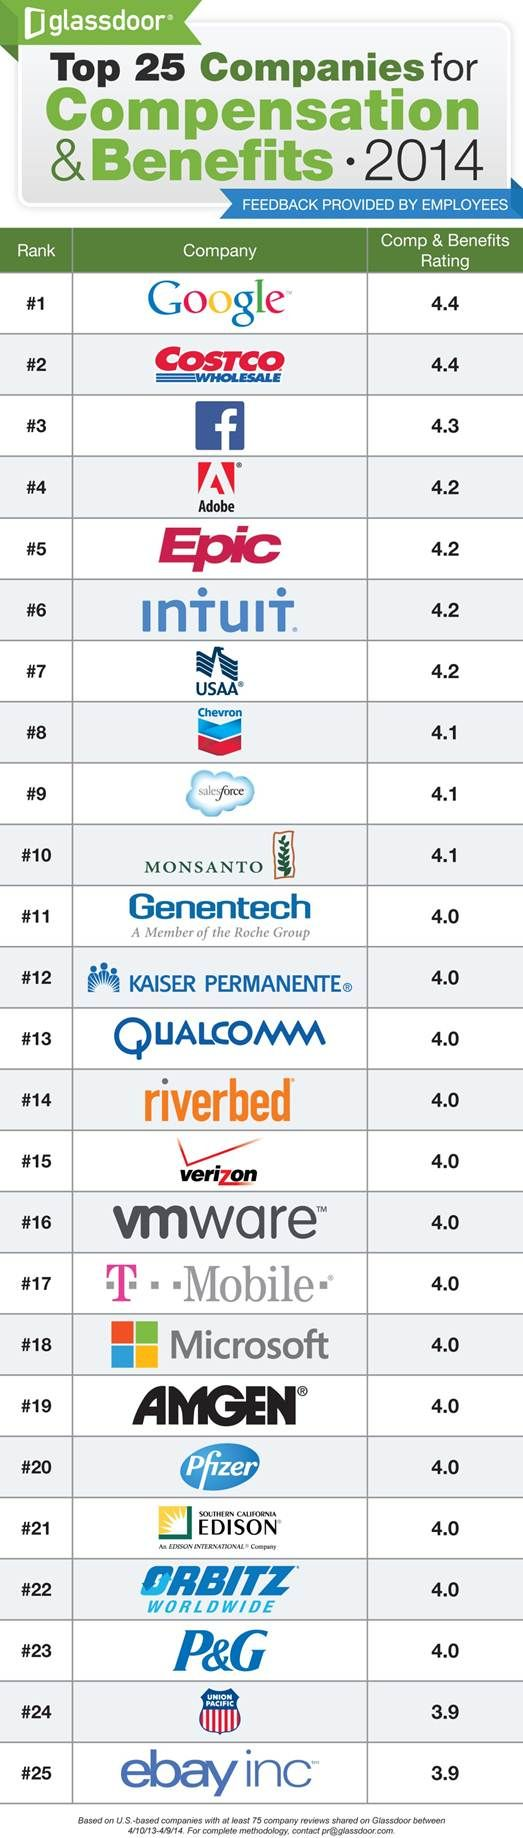 Glassdoor: Facebook ranks No. 3 behind Google, Costco in pay, benefits ratings - Inside Facebook